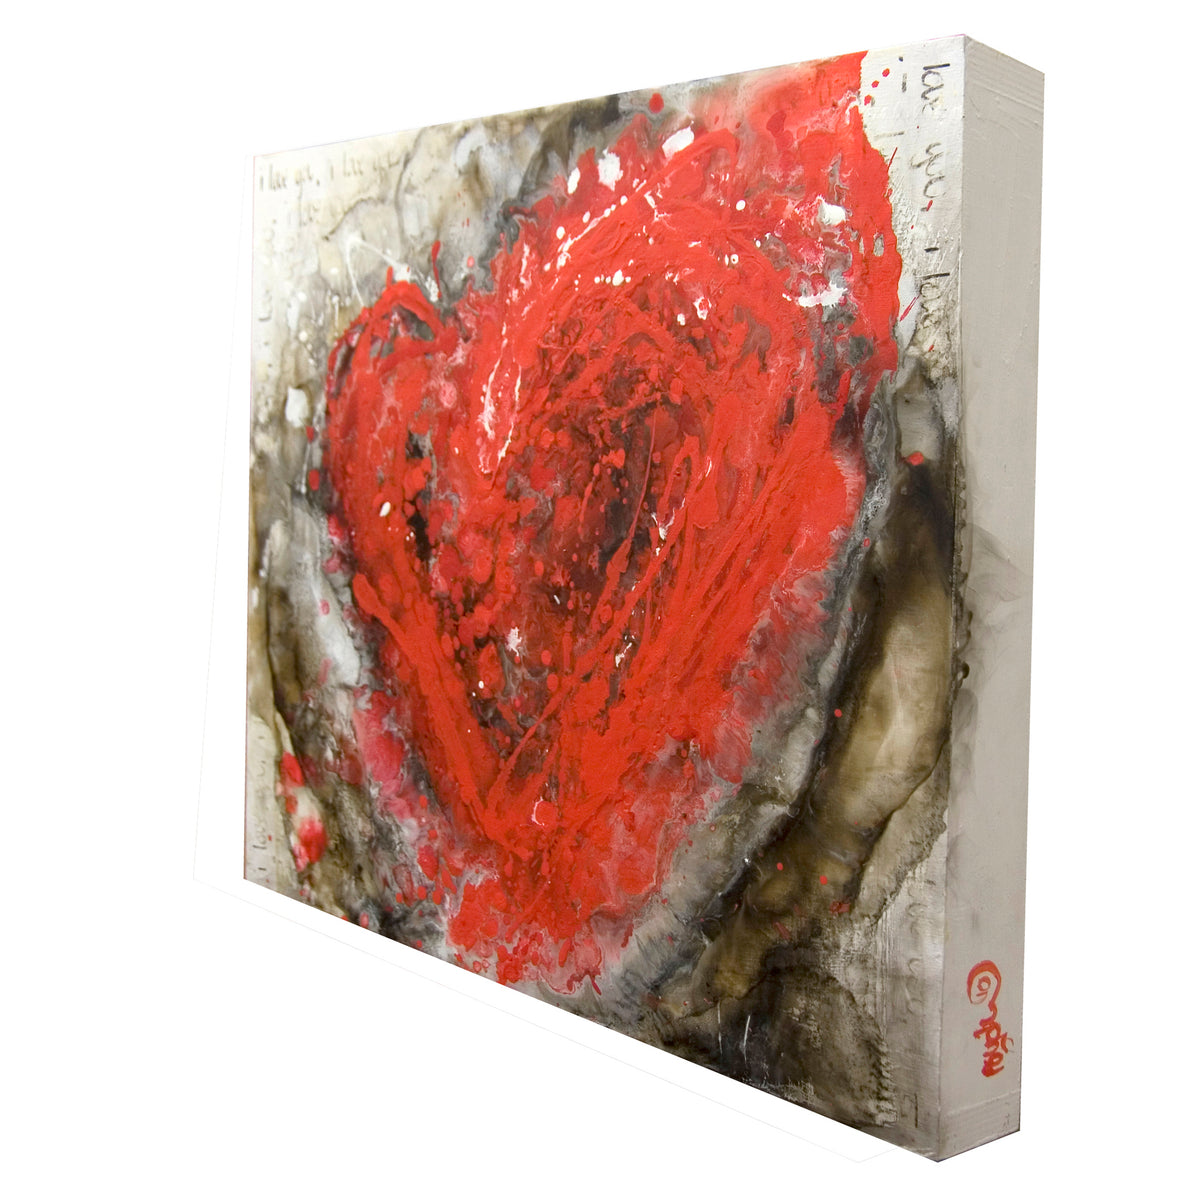 90 i love you's, Royden Astrop, British artist, painter, fire painting, painting with fire, fire heart, heart painting, oil painting